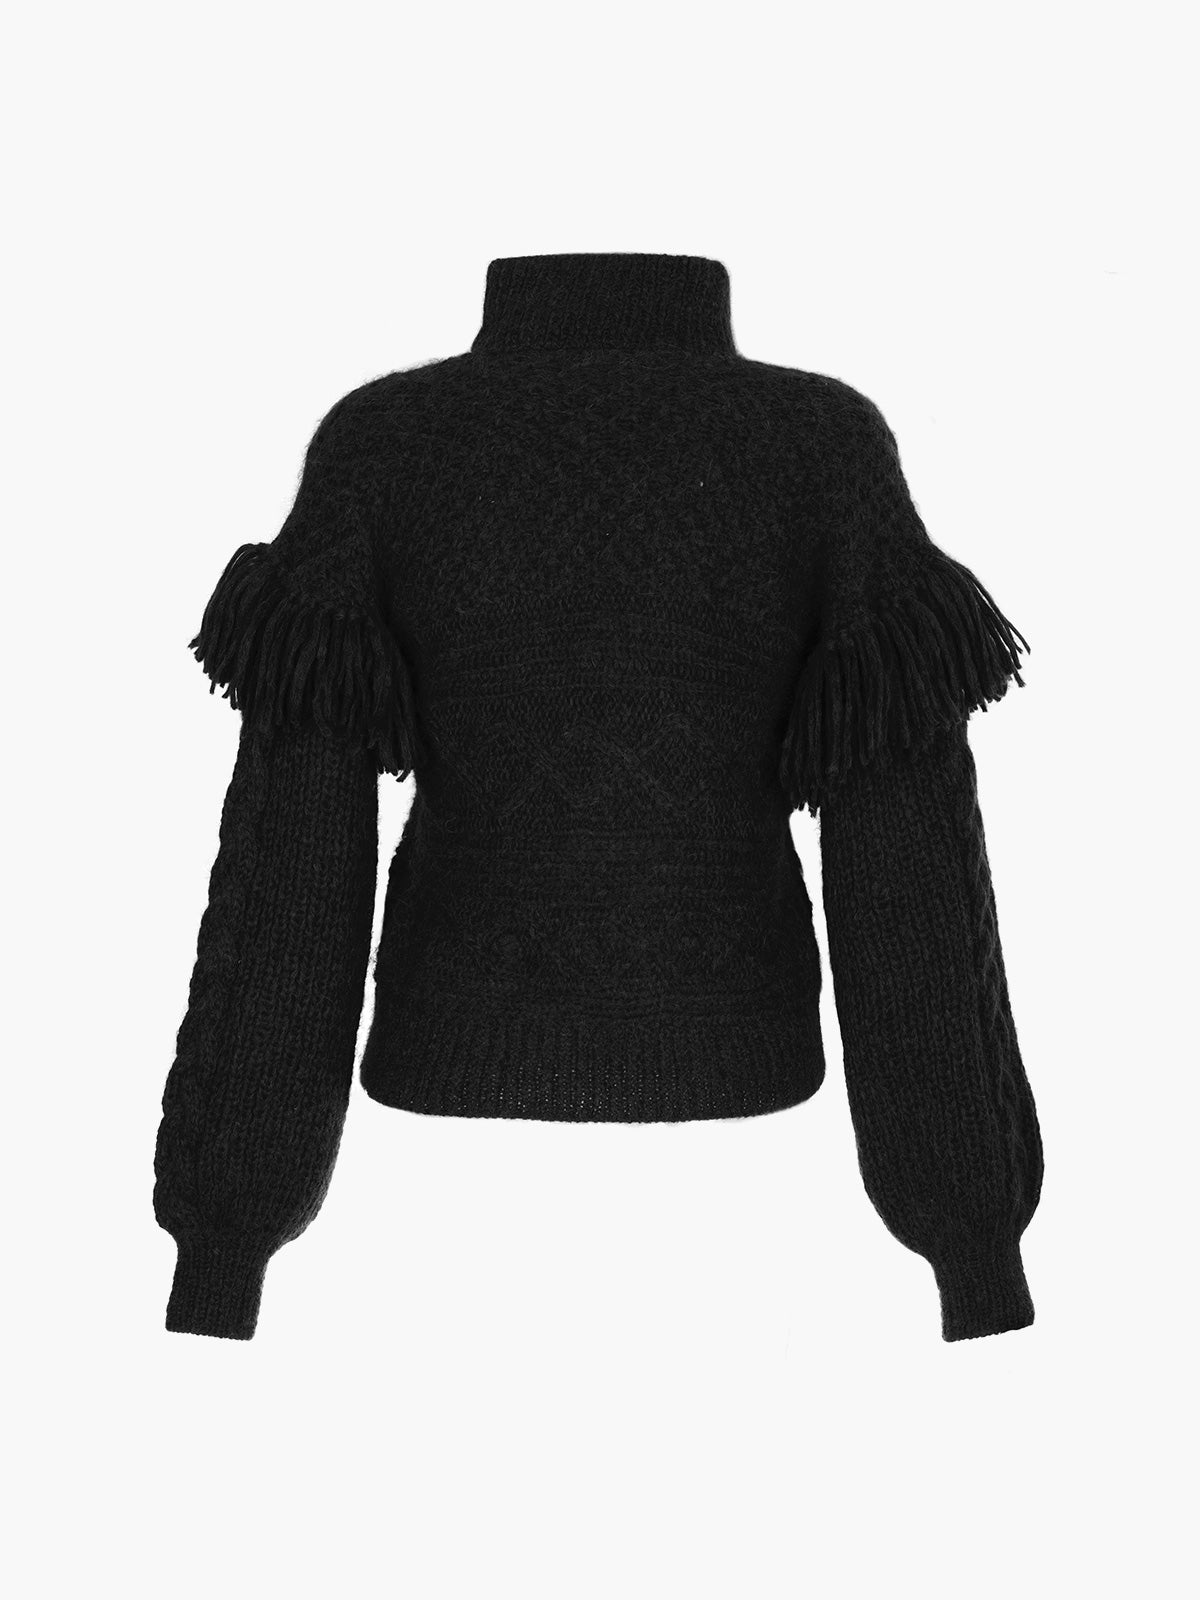 Clo Sweater | Black Clo Sweater | Black